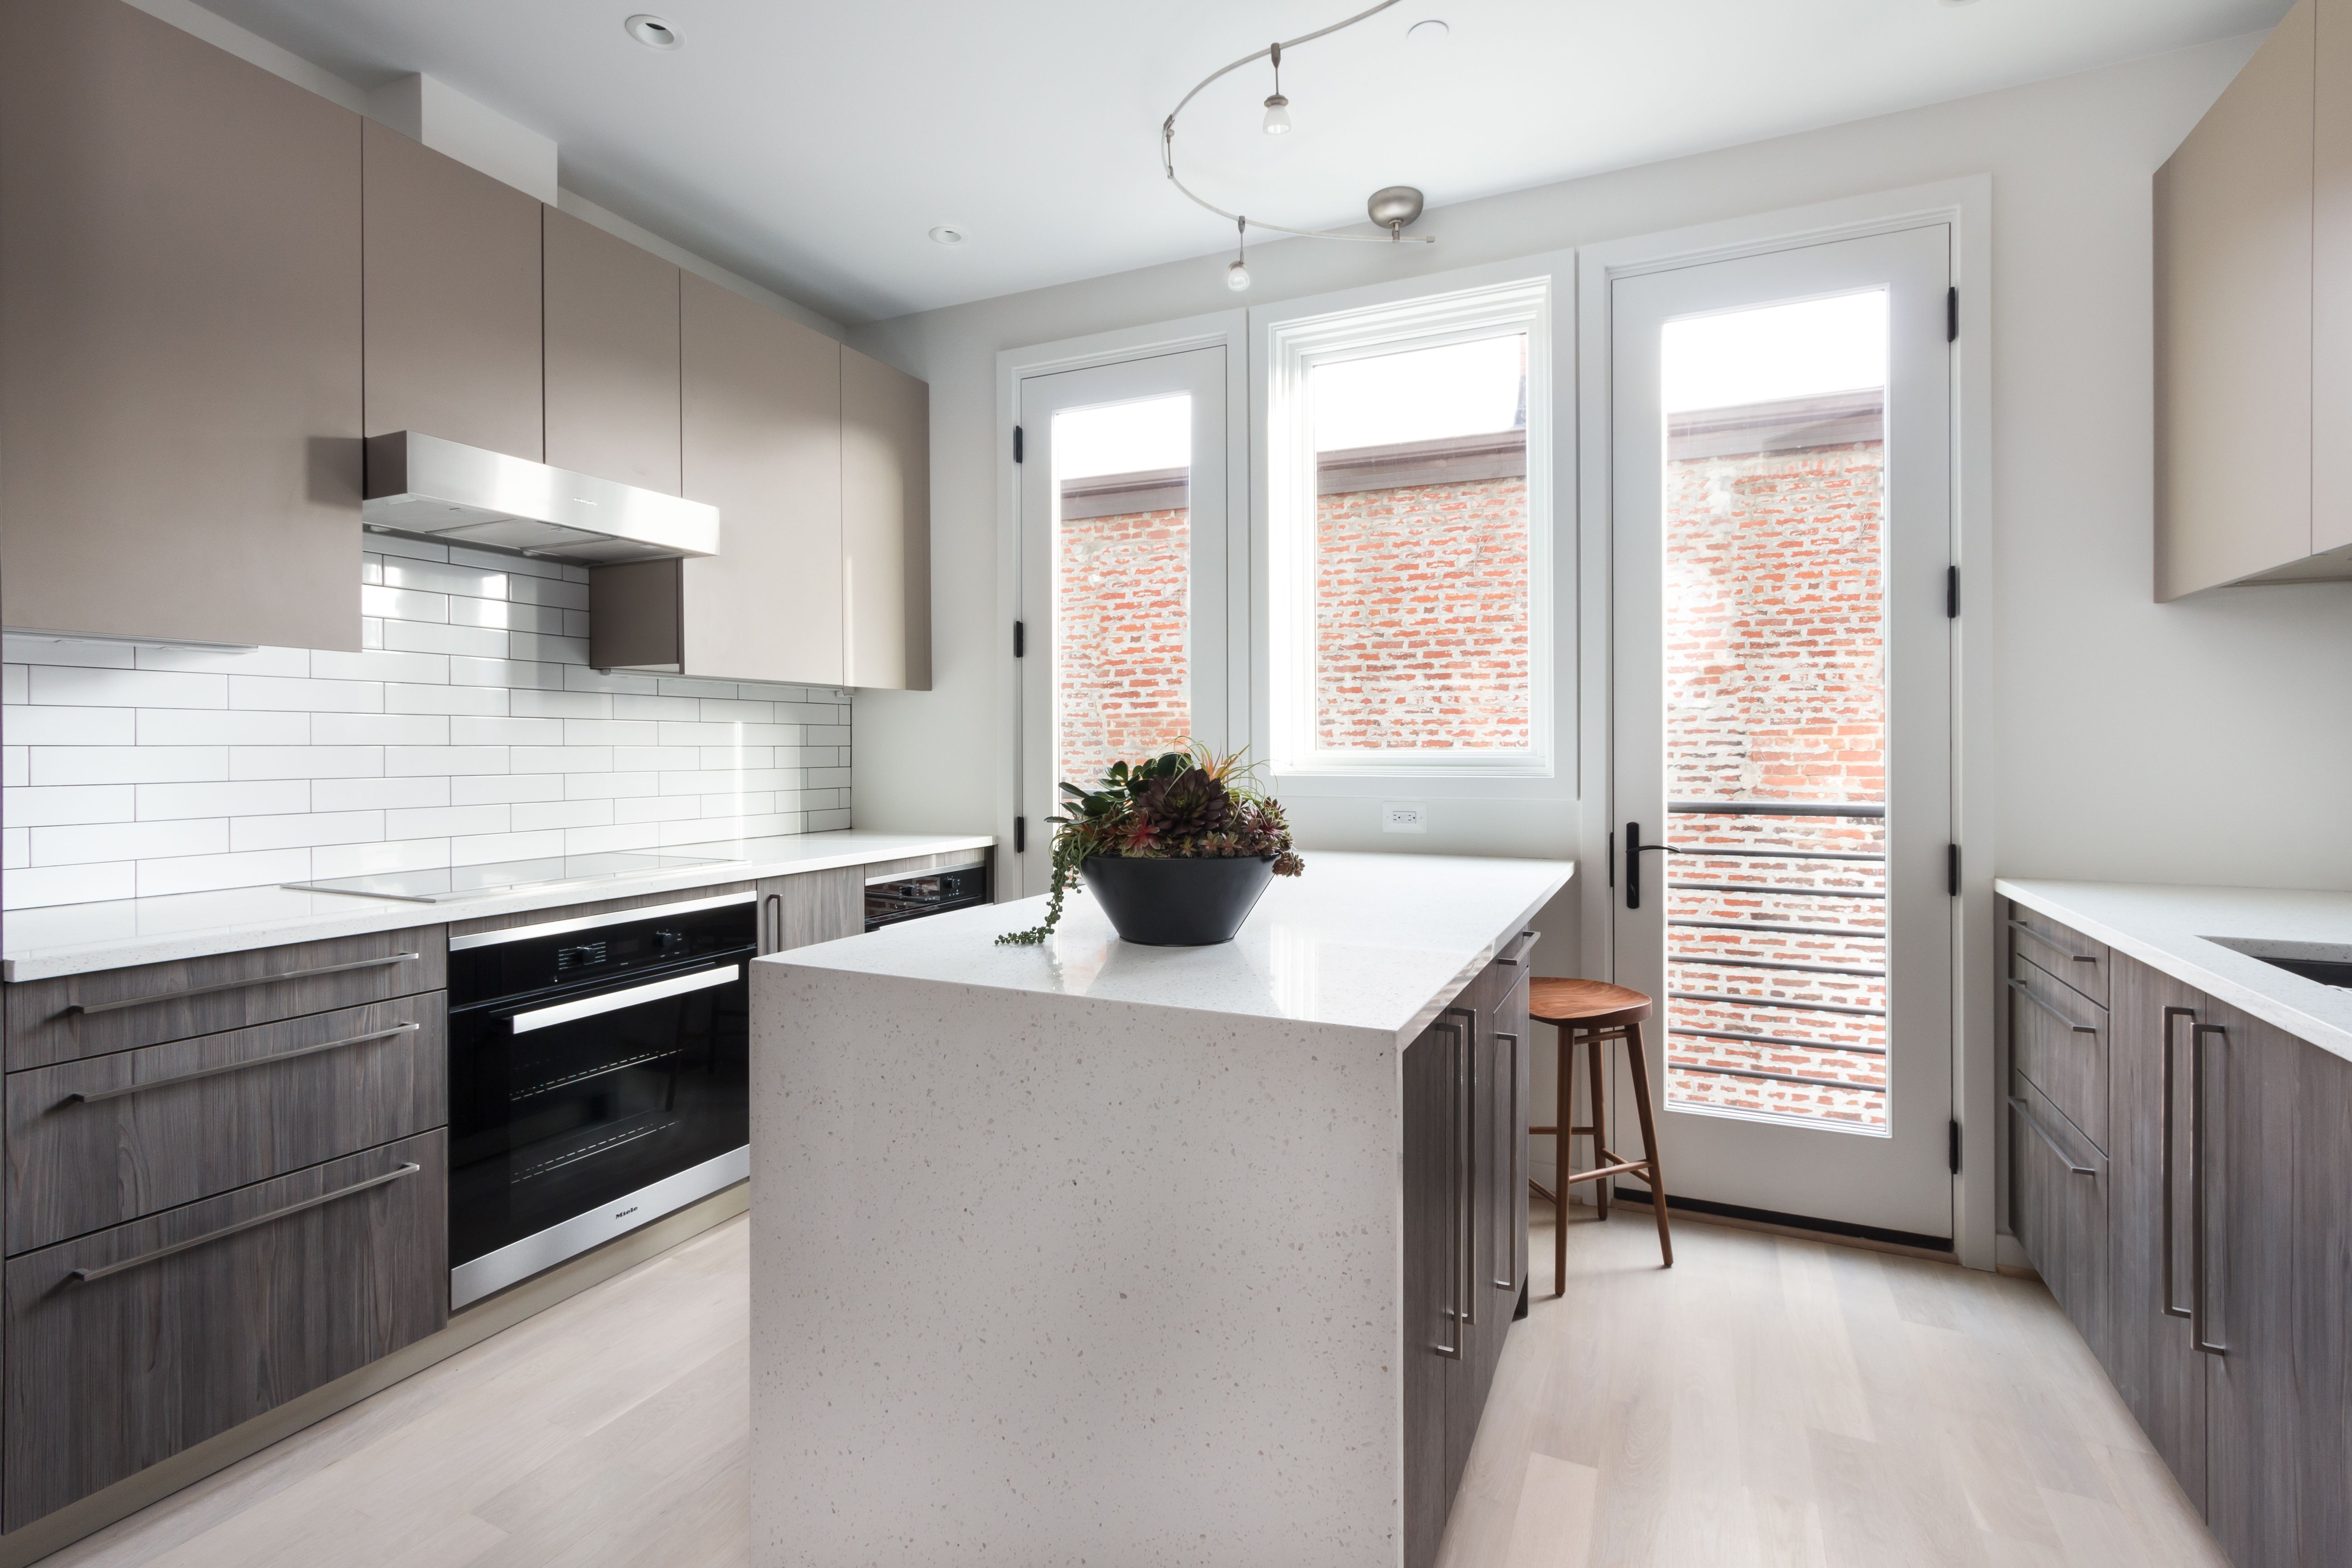 The Towns At Linden Court In Washington D C Snaidero Cabinetry Code Tundra Elm And Cappuccino Matte Melamine Kitchen Design Kitchen Cabinetry Cabinetry